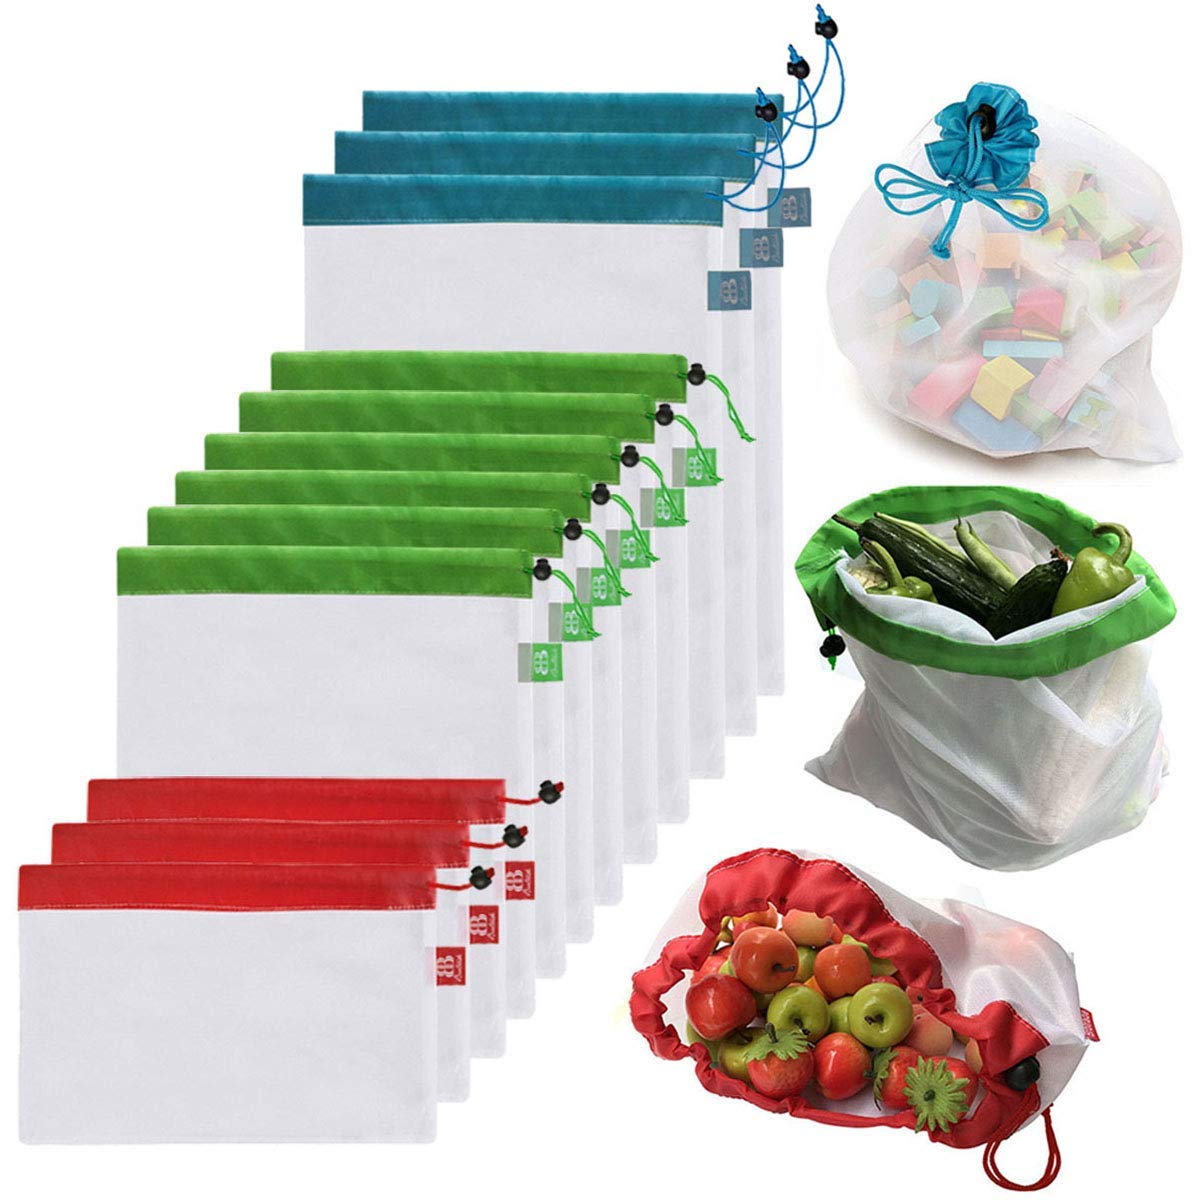 Set of 12 reusable mesh bags in three sizes